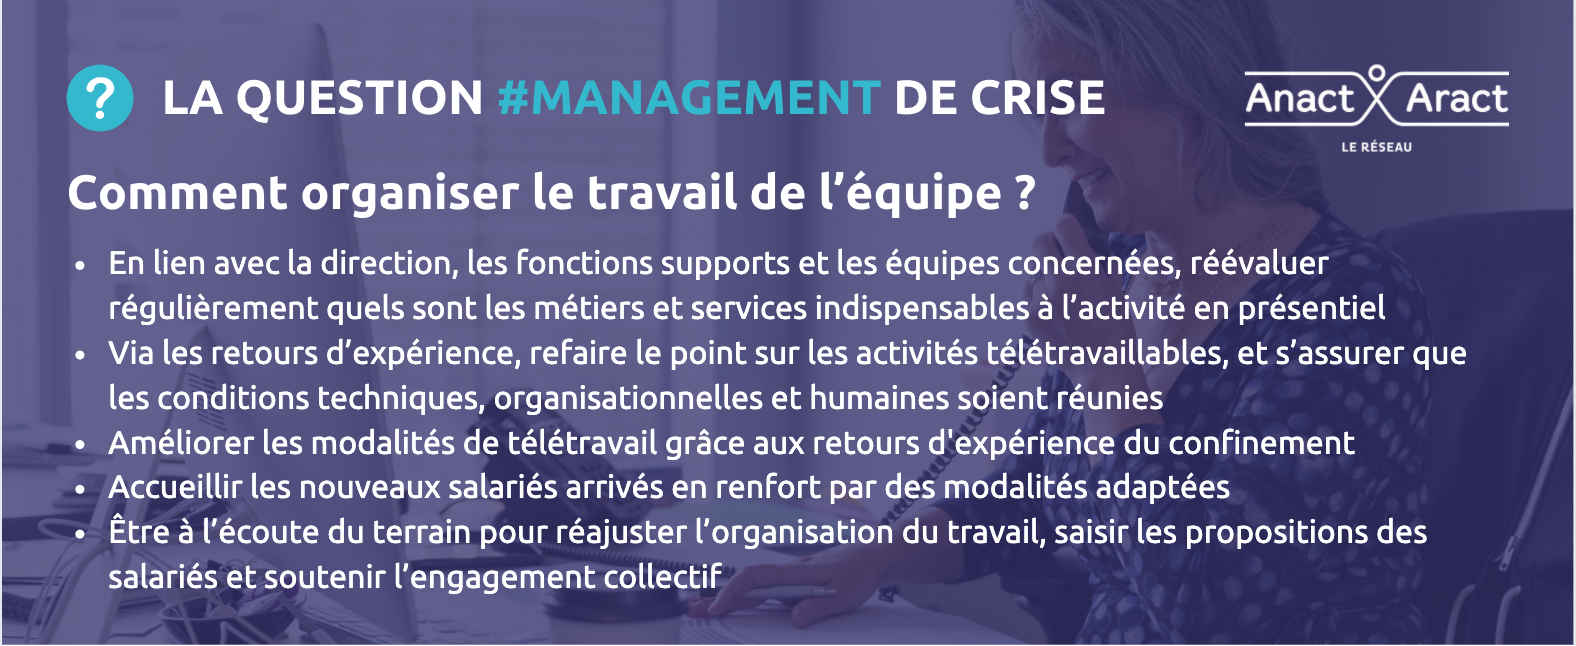 question-mgt-crise-2